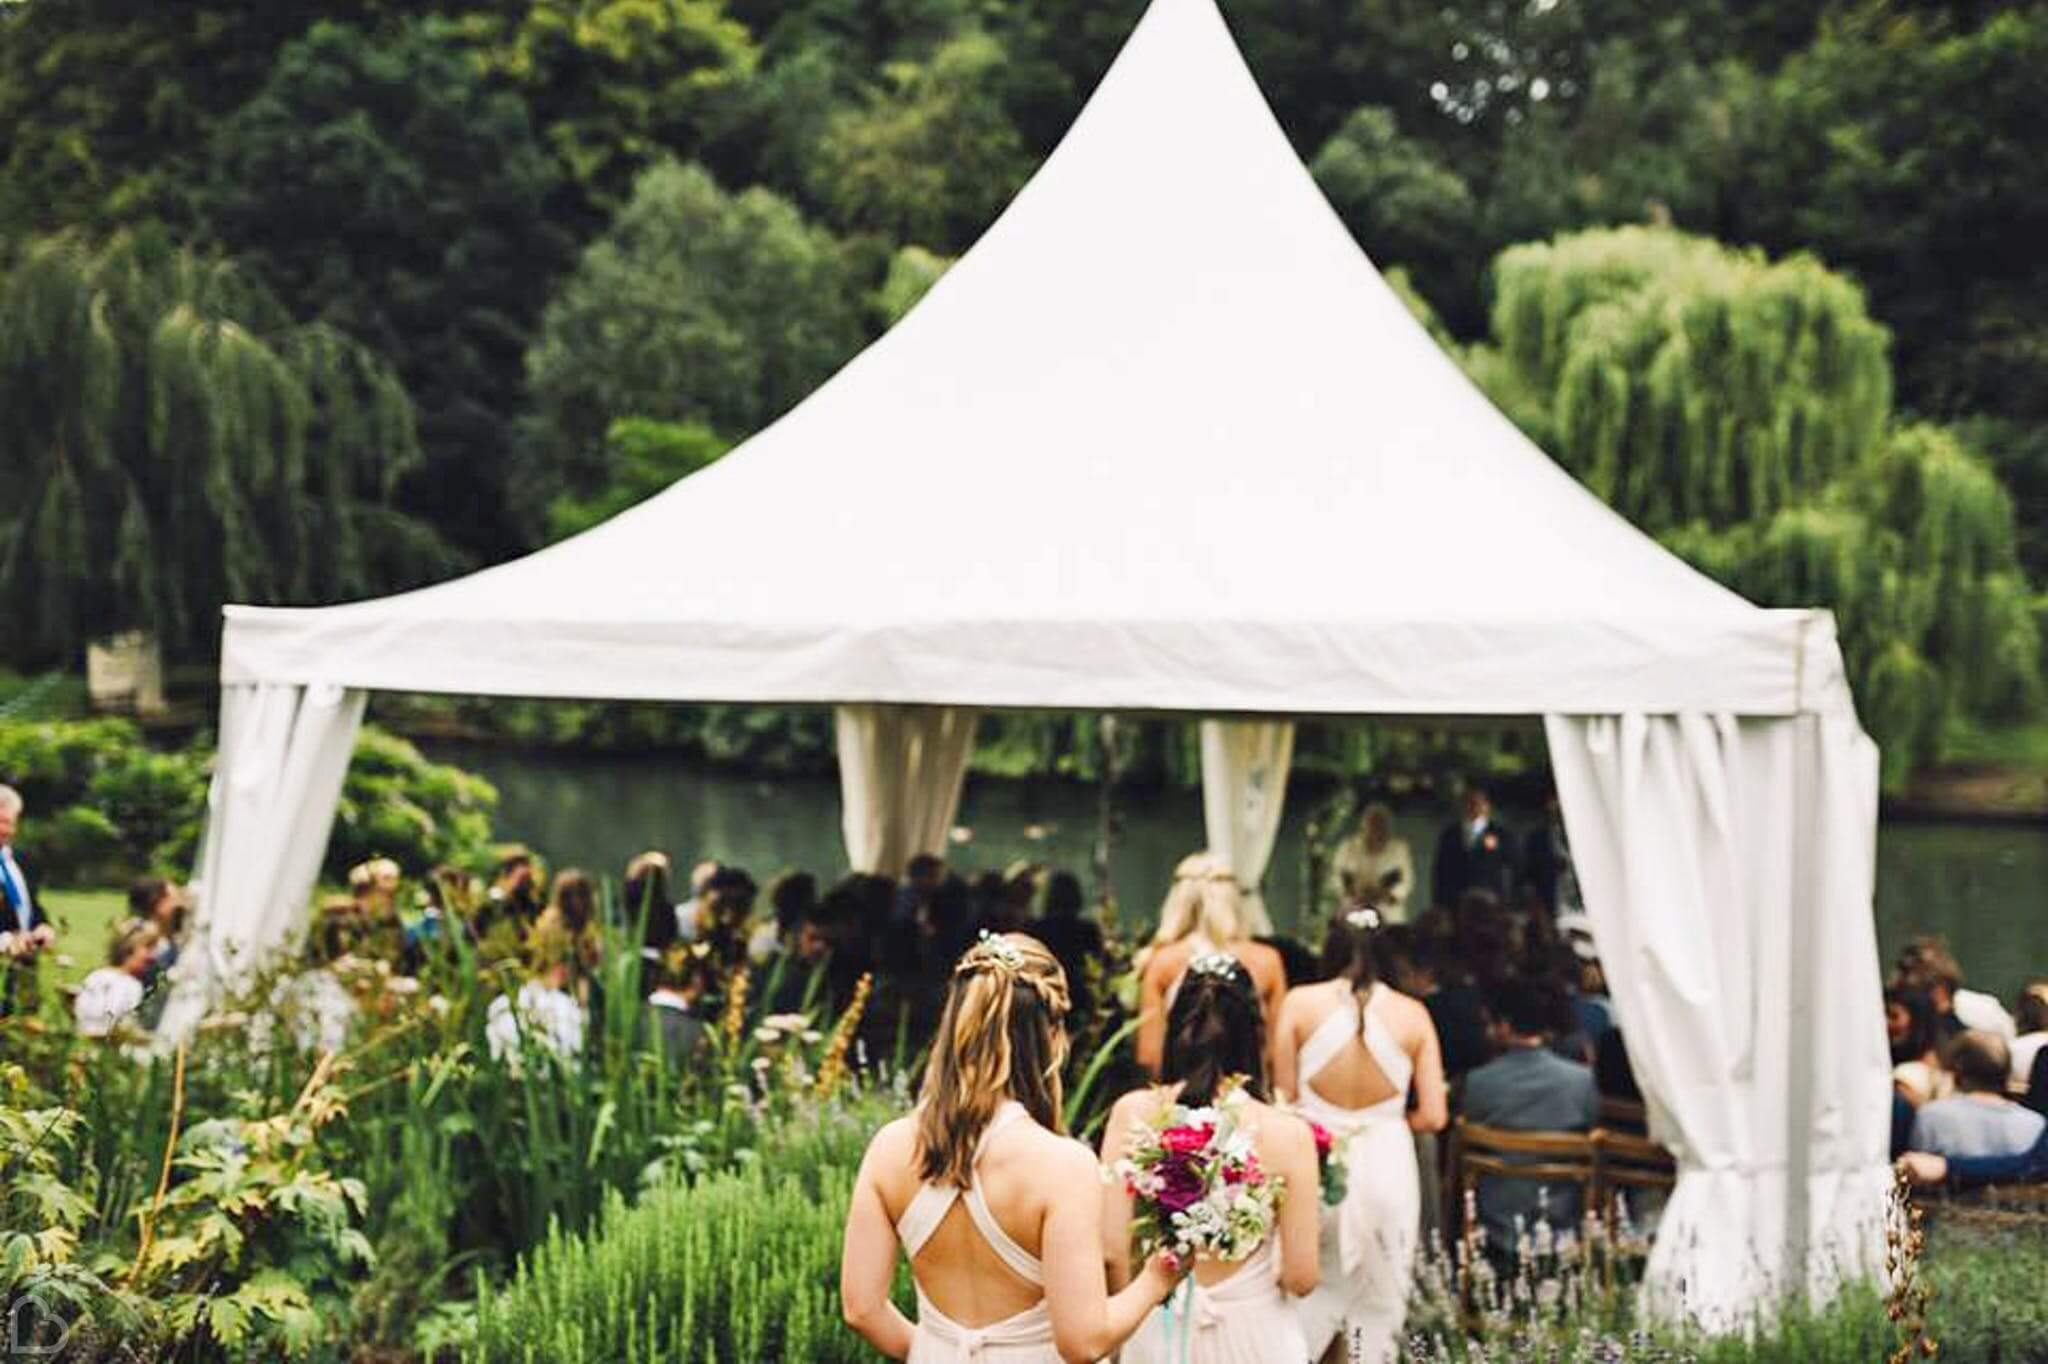 Busbridge Lakes in Surrey, bridemaids approach wedding ceremony by the lake.